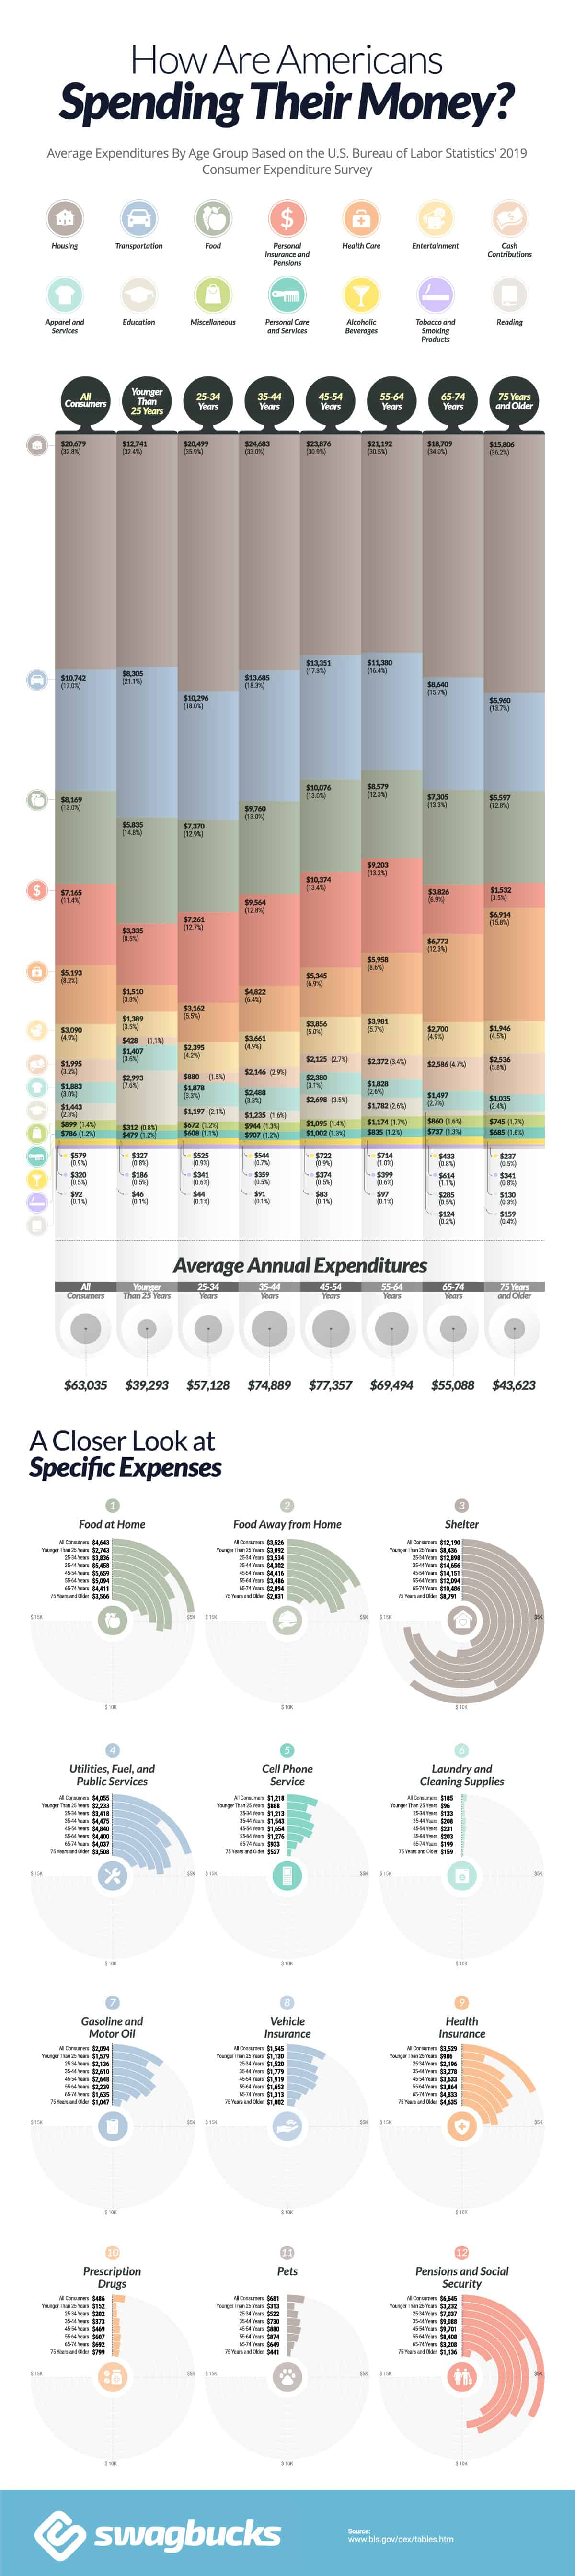 How Americans of Different Ages Are Spending Their Money